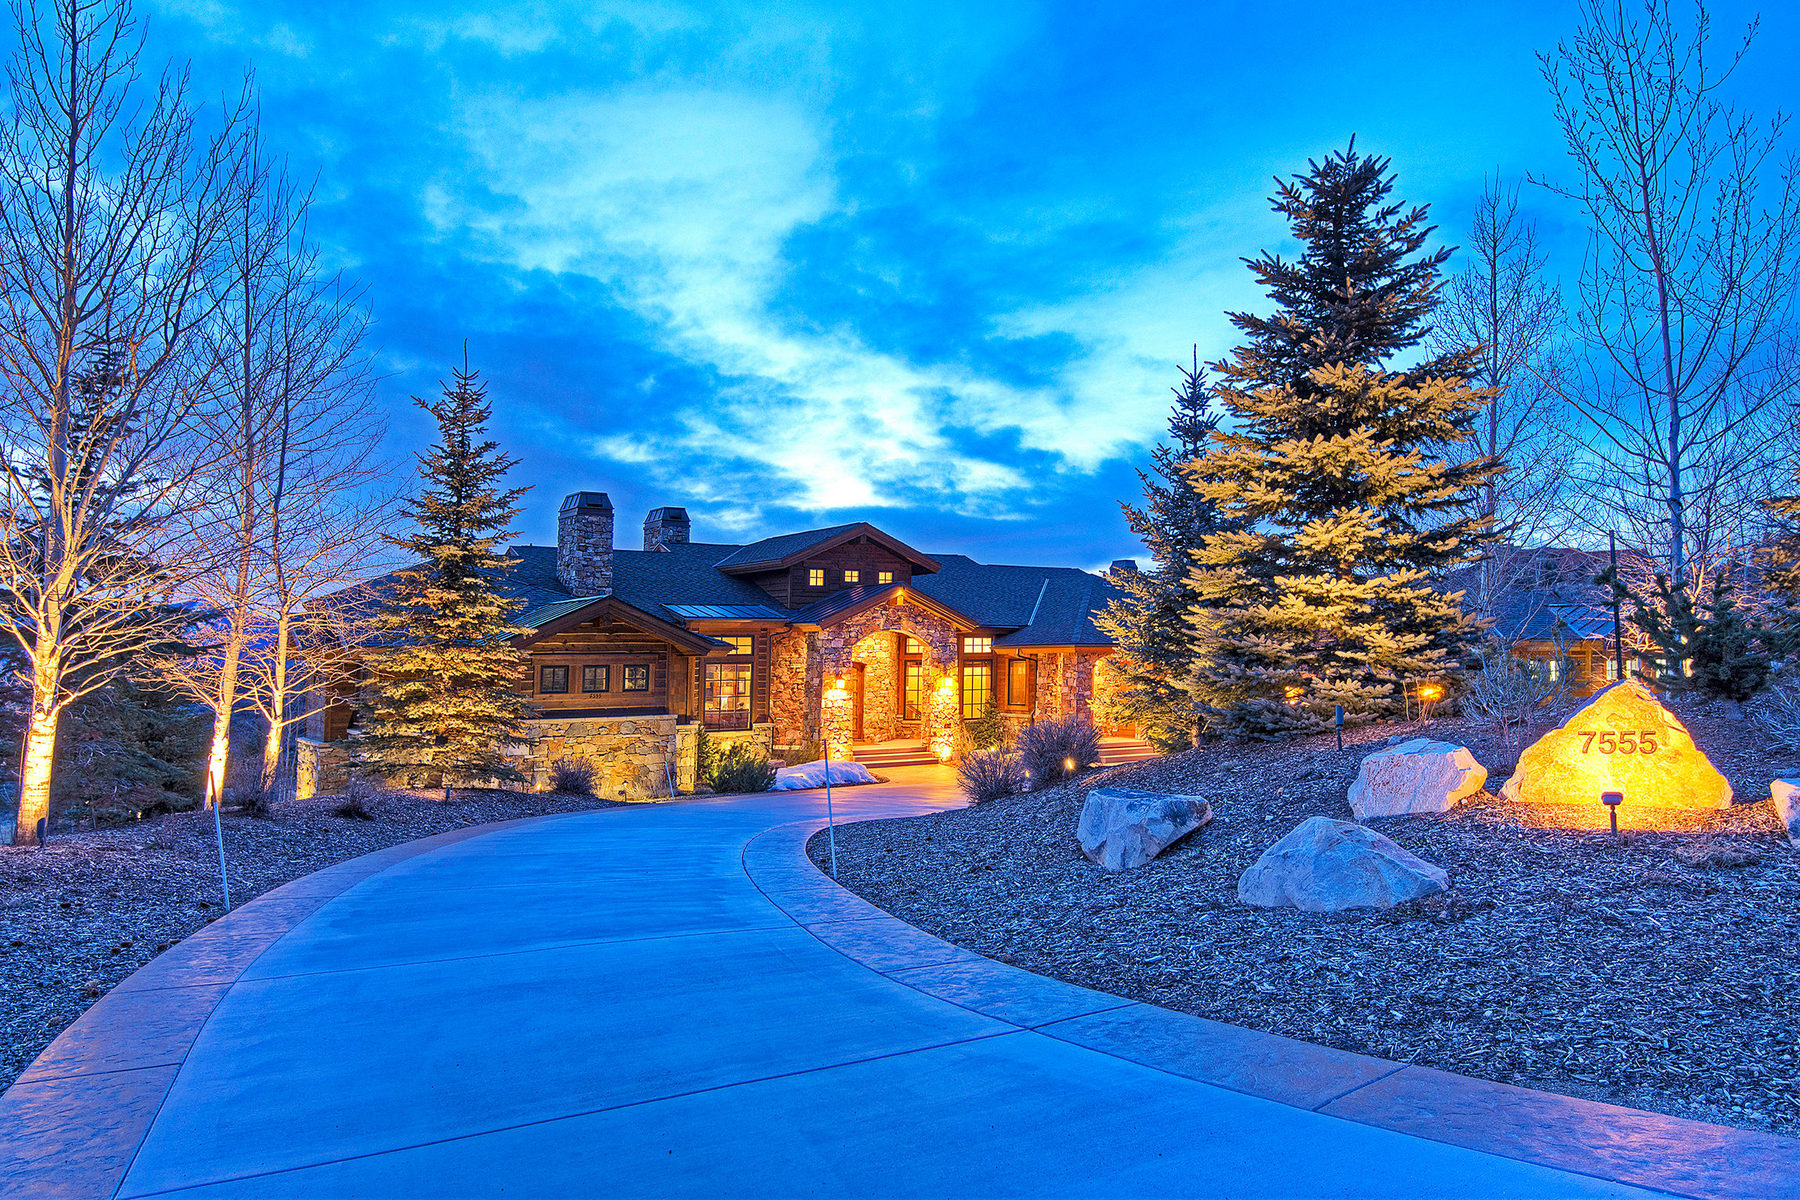 Moradia para Venda às Stunning Promontory Mountain Home With Golf & Ski Resort Views 7555 N. Ranch Club Trail Lot 23 Park City, Utah 84098 Estados Unidos